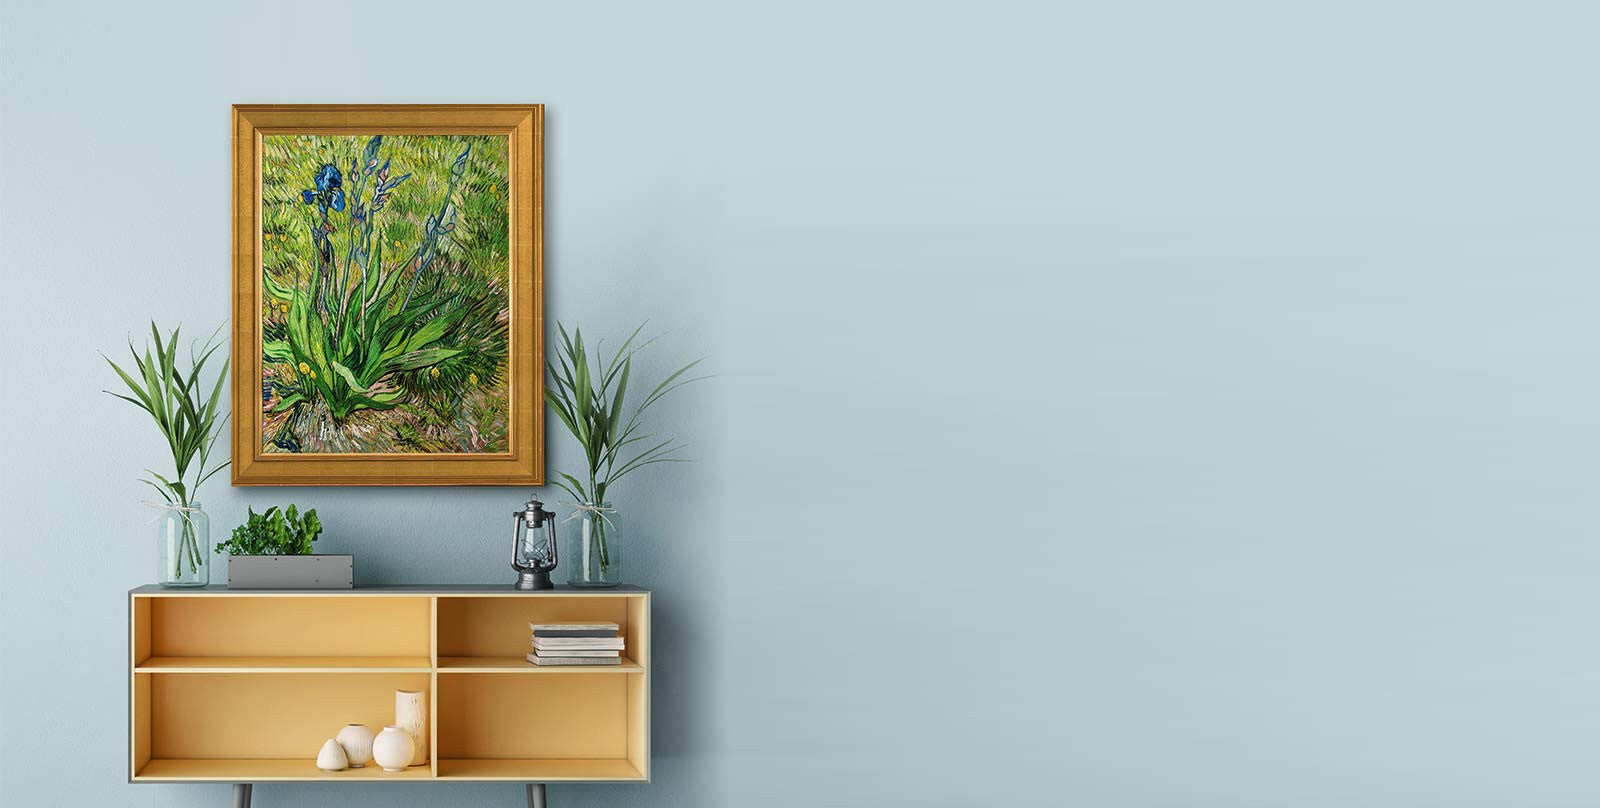 Van Gogh Iris Reproduction Decor